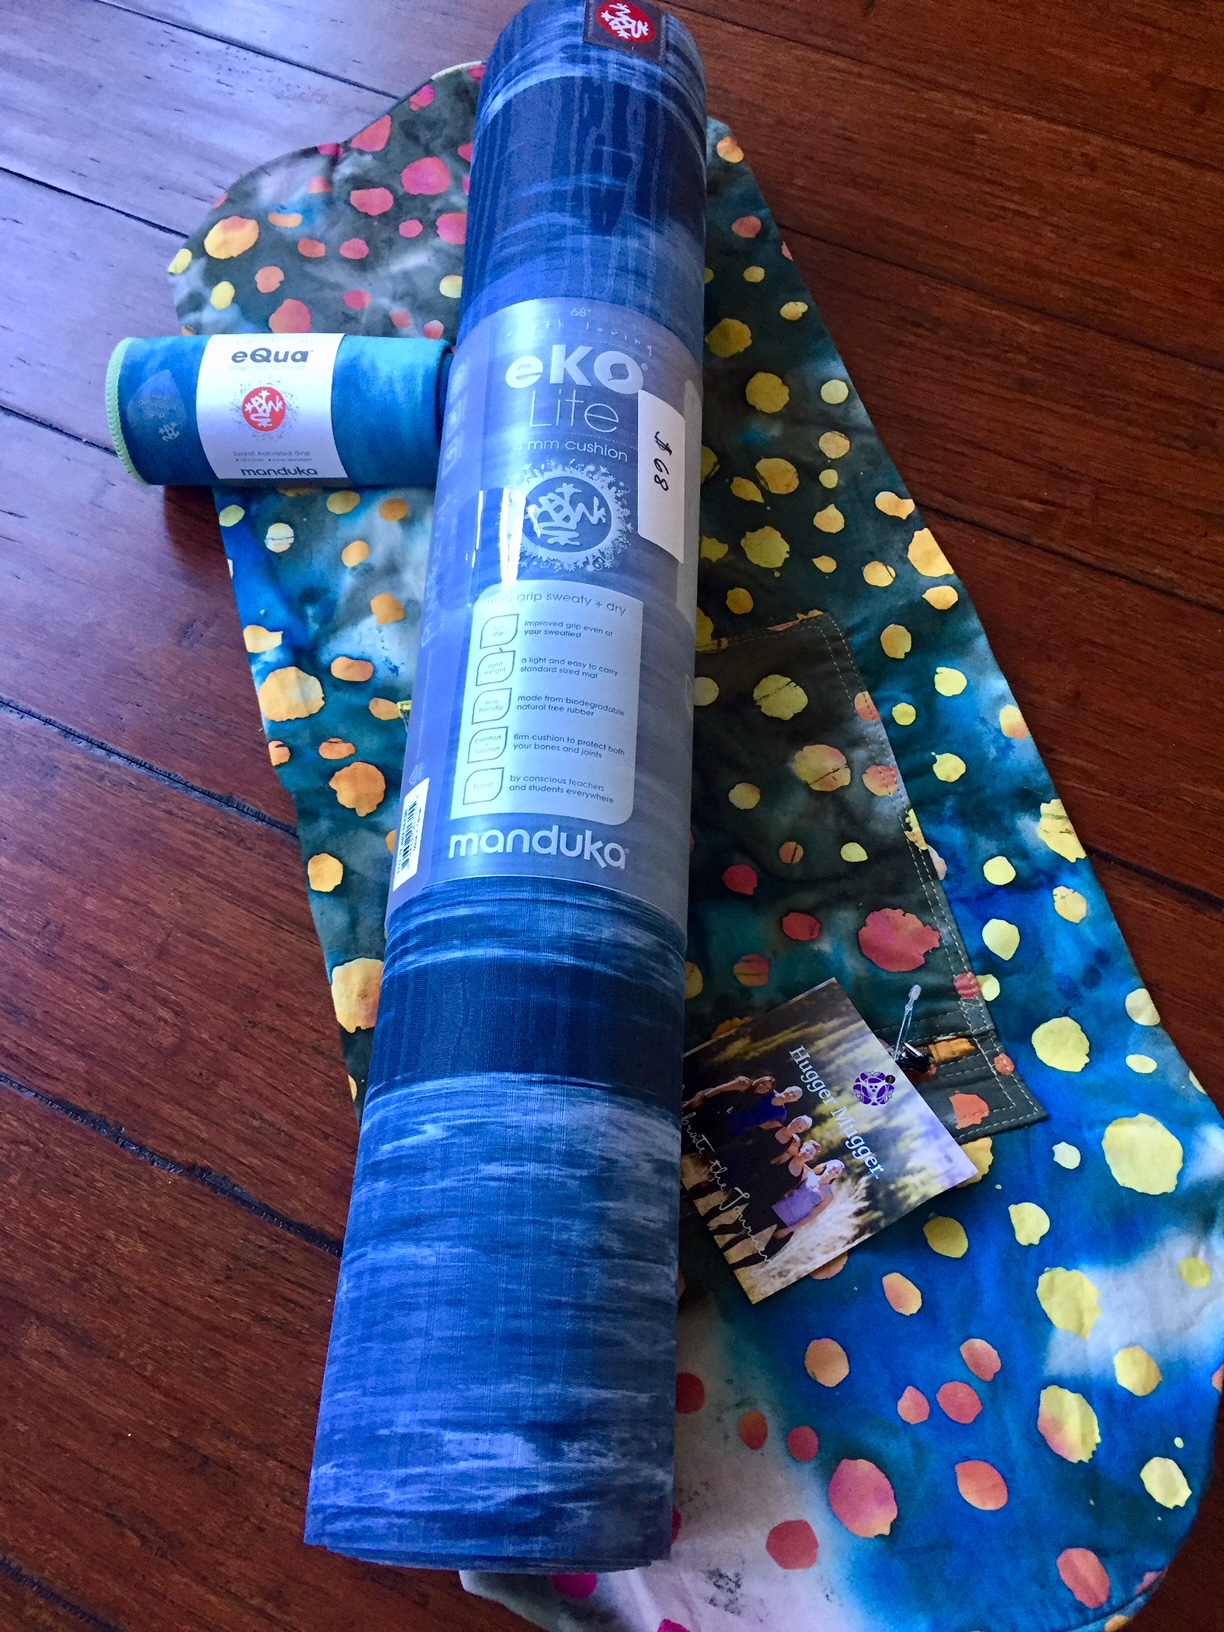 Yoga bundle with mat, carrier bag, and yoga towel at Coolidge Yoga